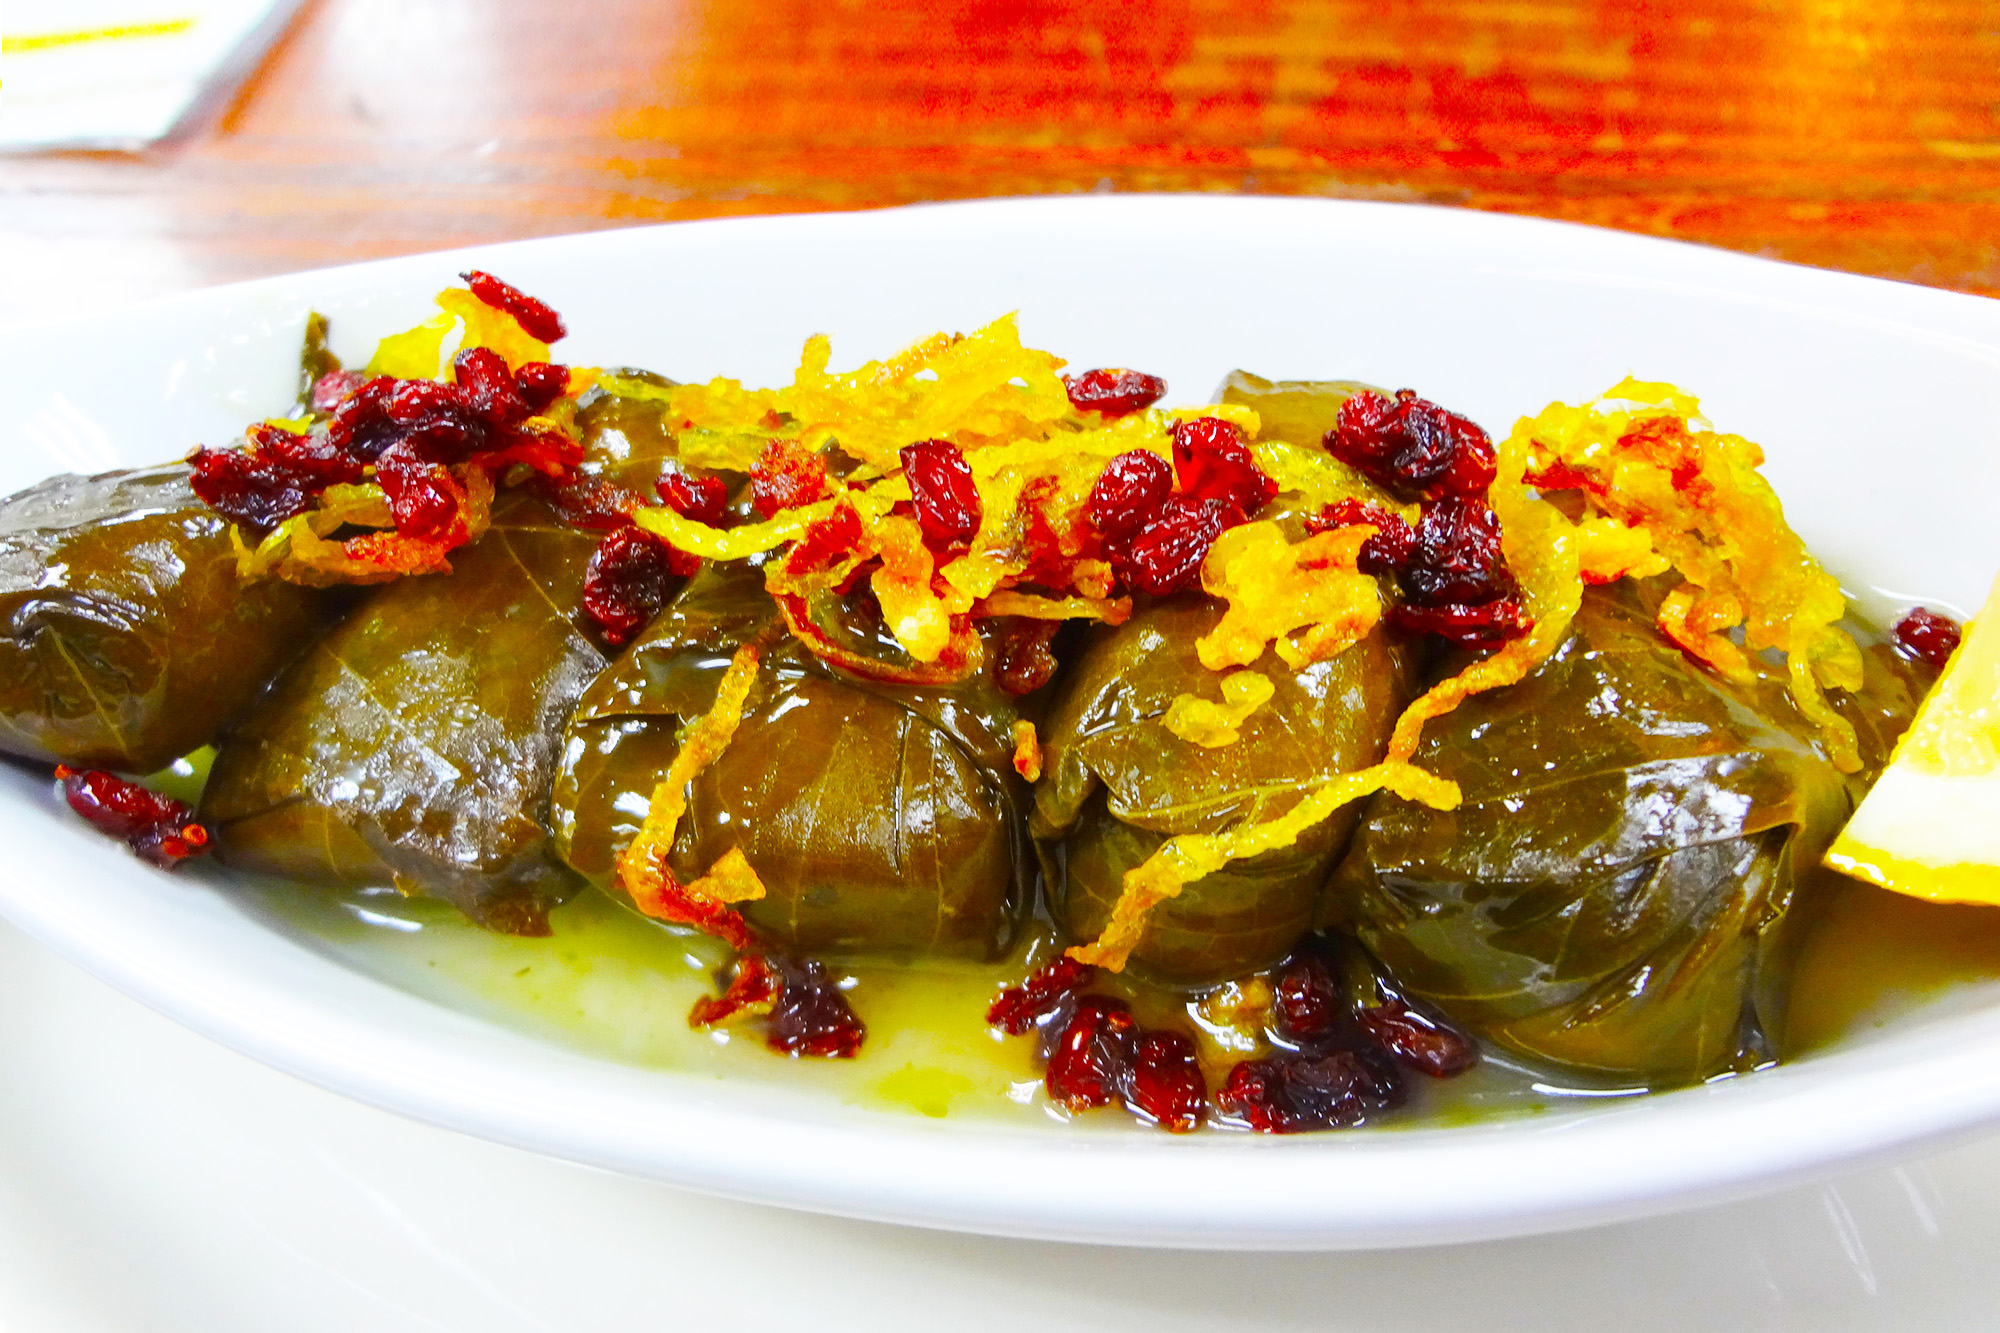 Appetizers and Side Dishes at Sahel Persian Restaurant